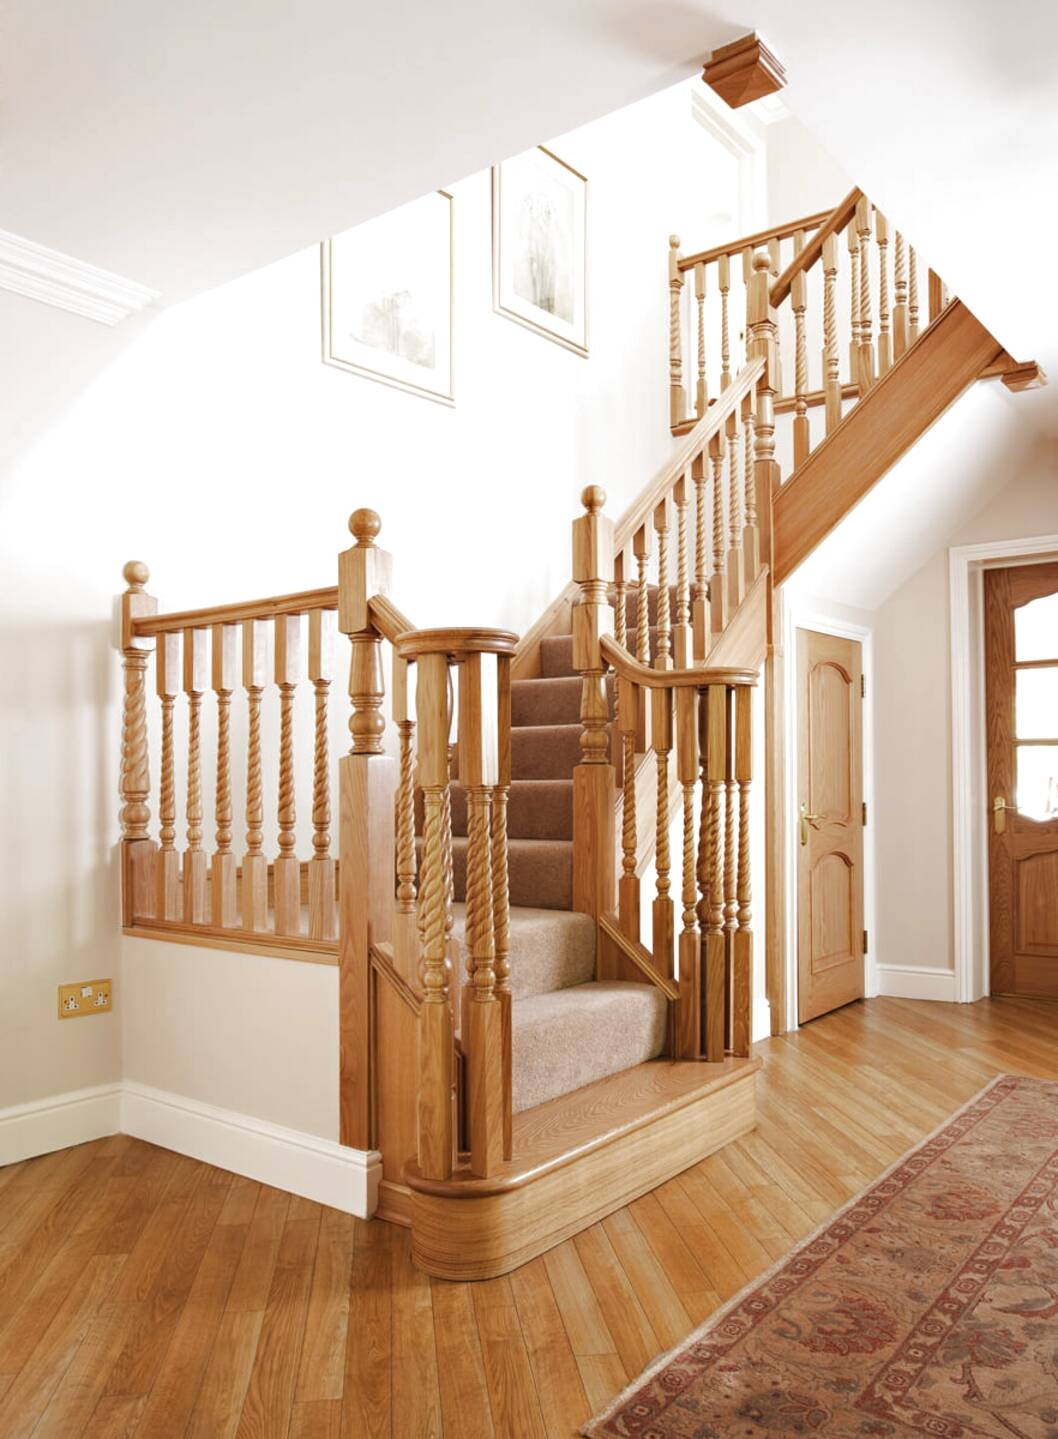 Oak Staircase For Sale Only 2 Left At 65   Craigslist Spiral Staircase For Sale By Owner   Stairs Design   School   Handrail   Stair Case   Metal